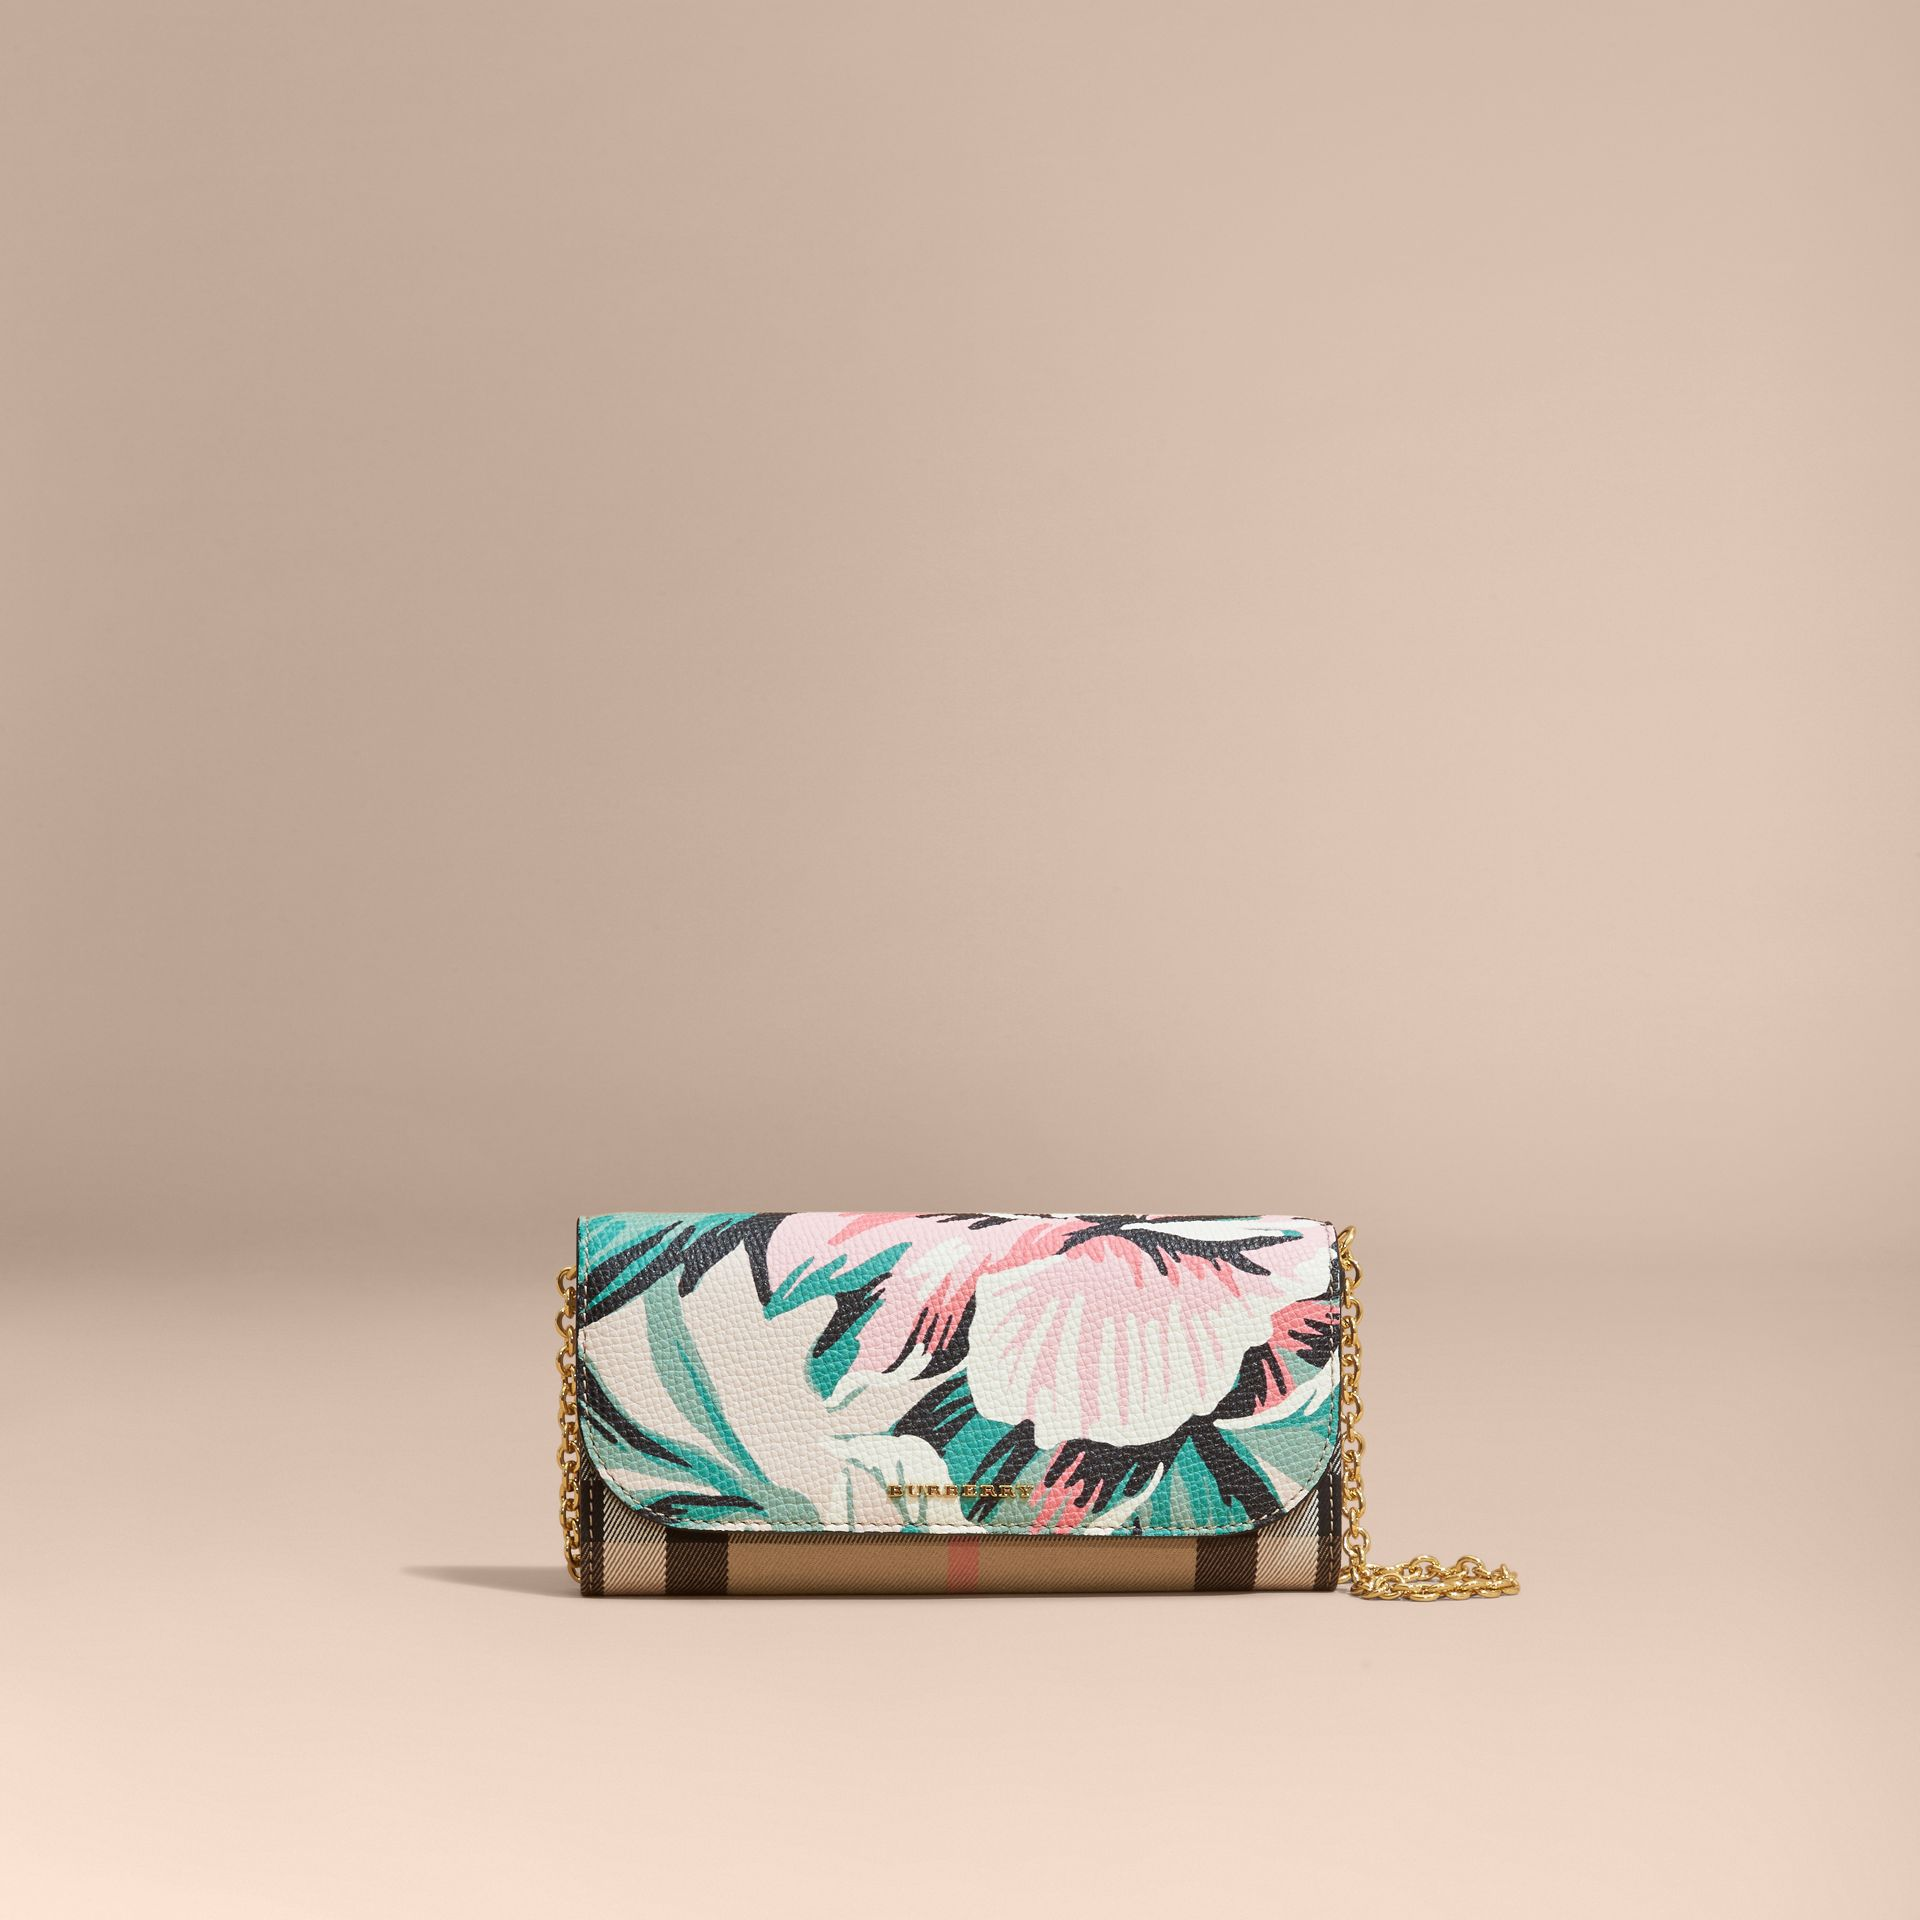 House Check and Peony Rose Print Wallet with Chain in Limestone/emerald Green - gallery image 9